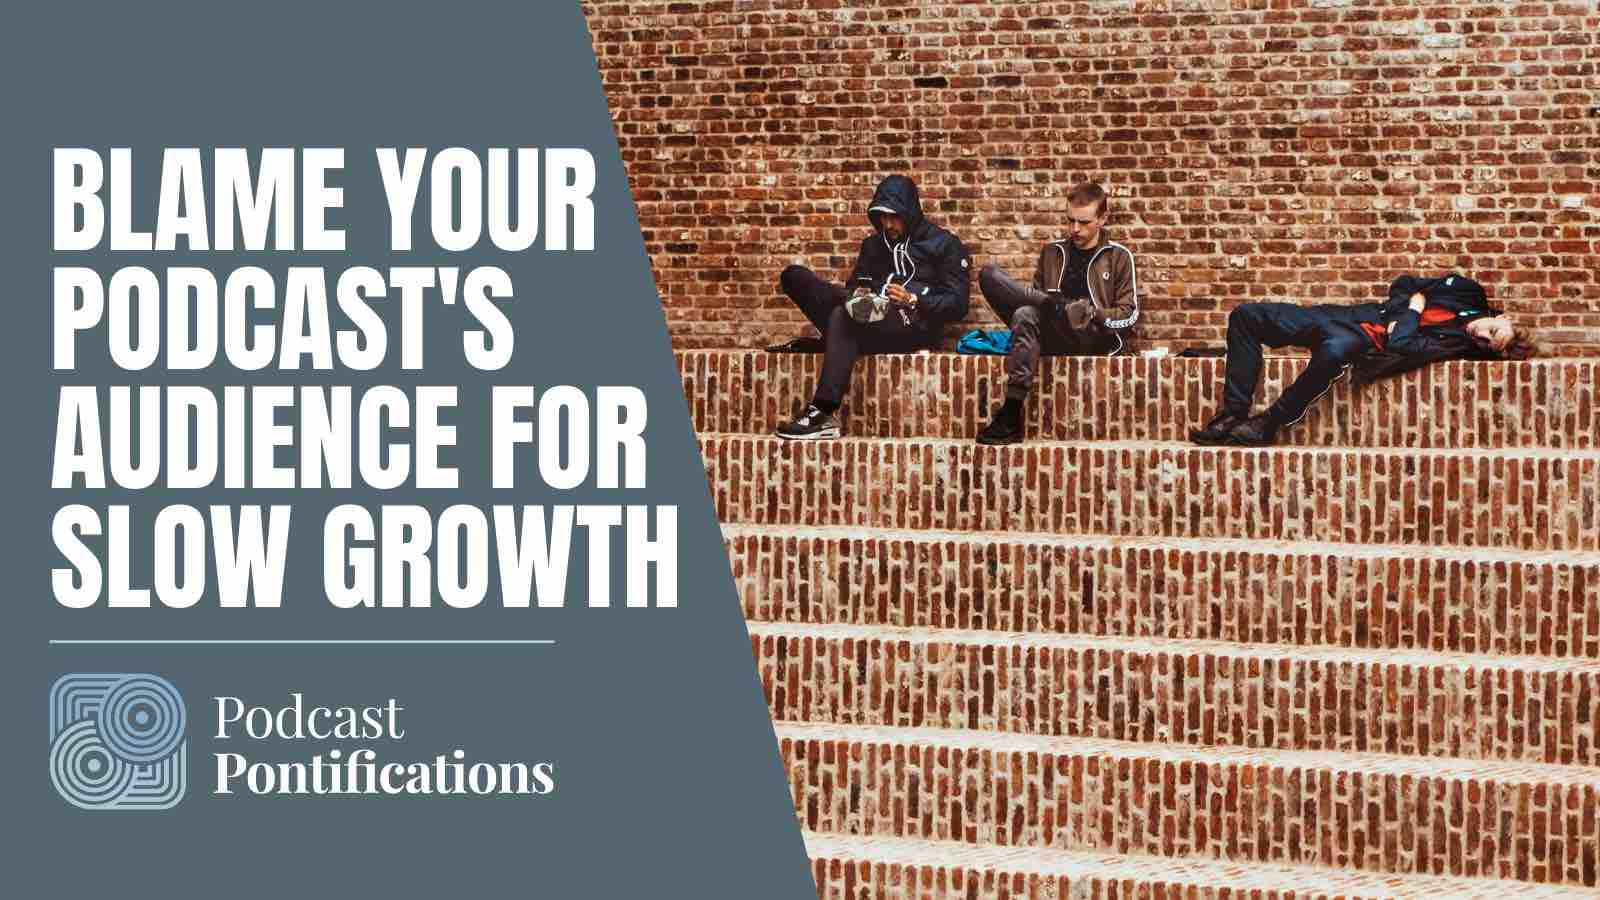 Blame Your Podcast's Audience For Slow Growth